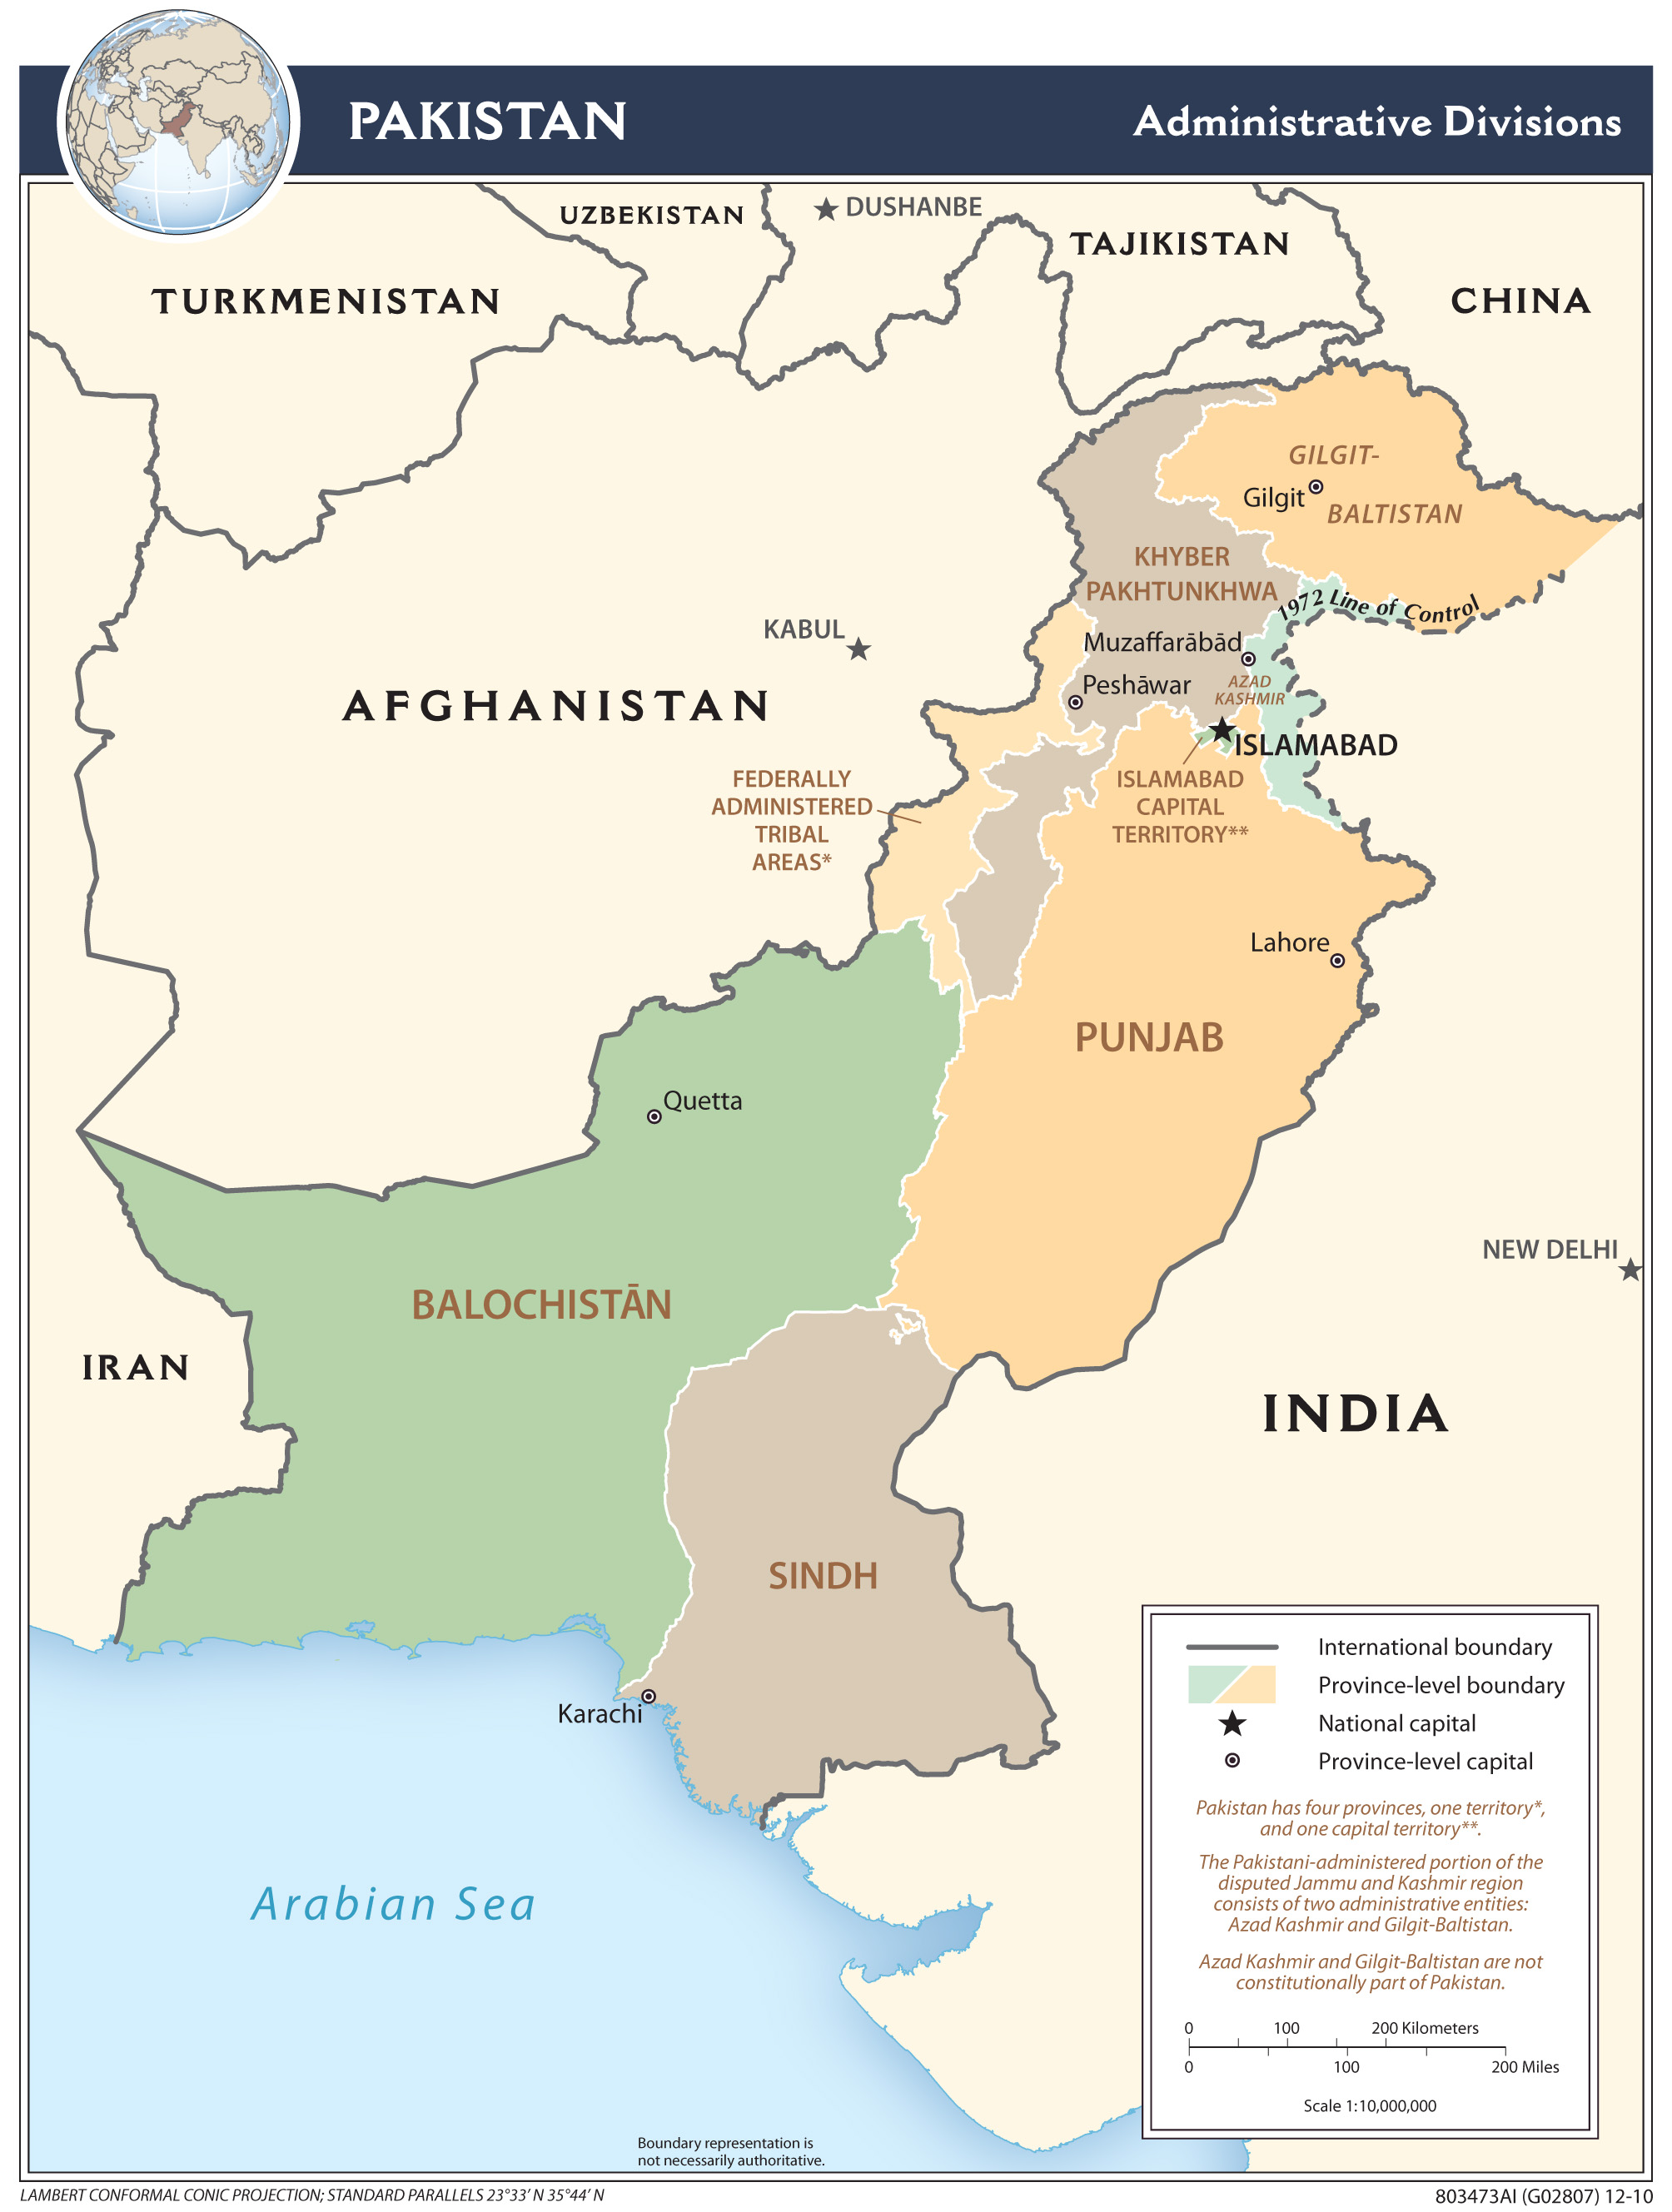 Maps Of Pakistan Pakistan Maps   Perry Castañeda Map Collection   UT Library Online